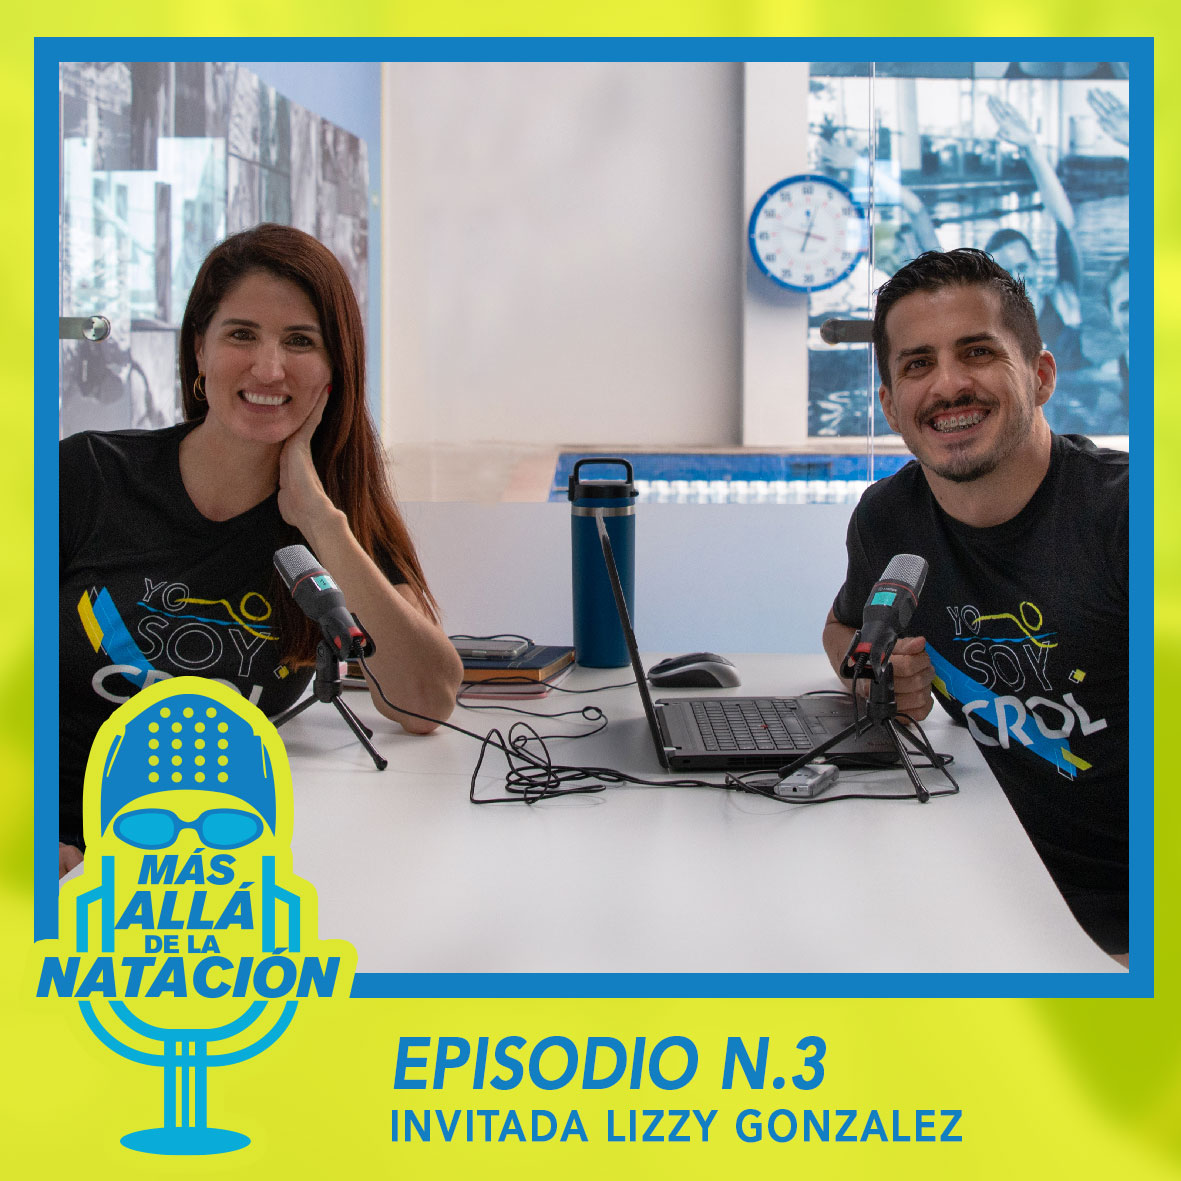 imagen-podcast-lizzy